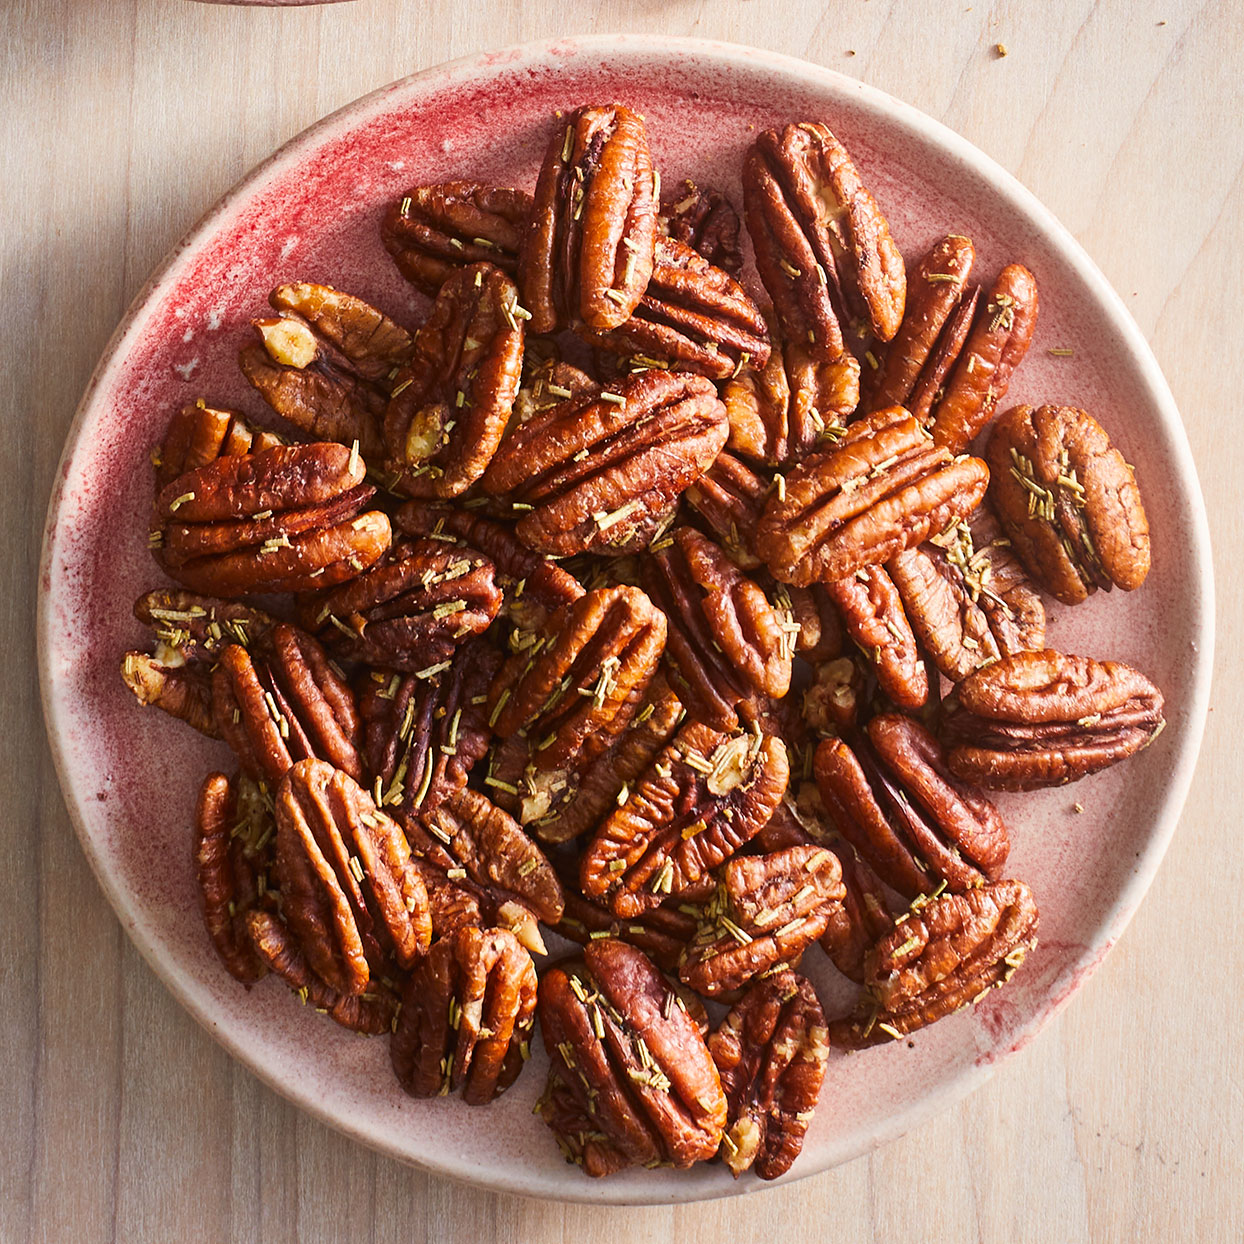 Rosemary-Garlic Pecans